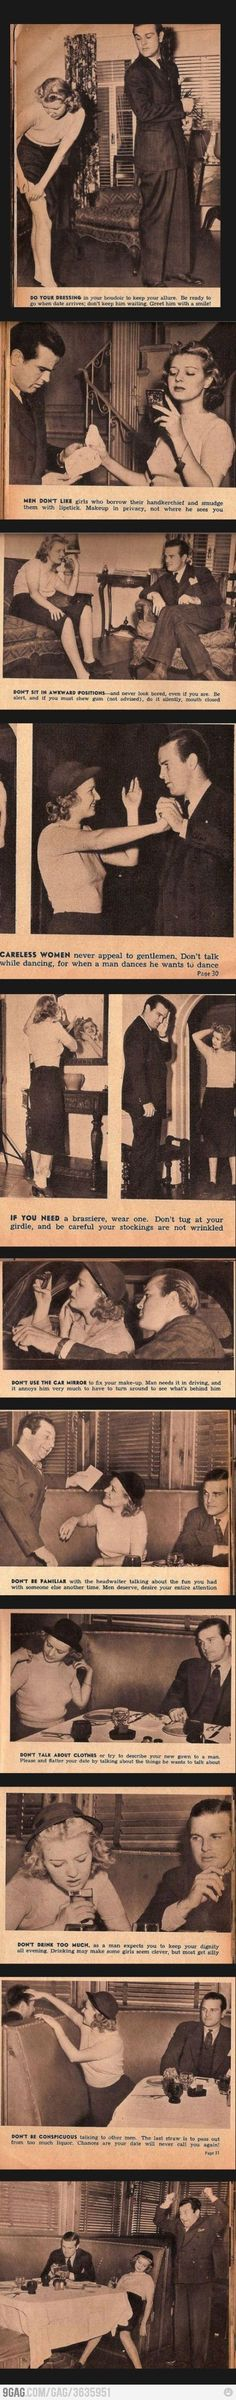 'Vintage' tips for women